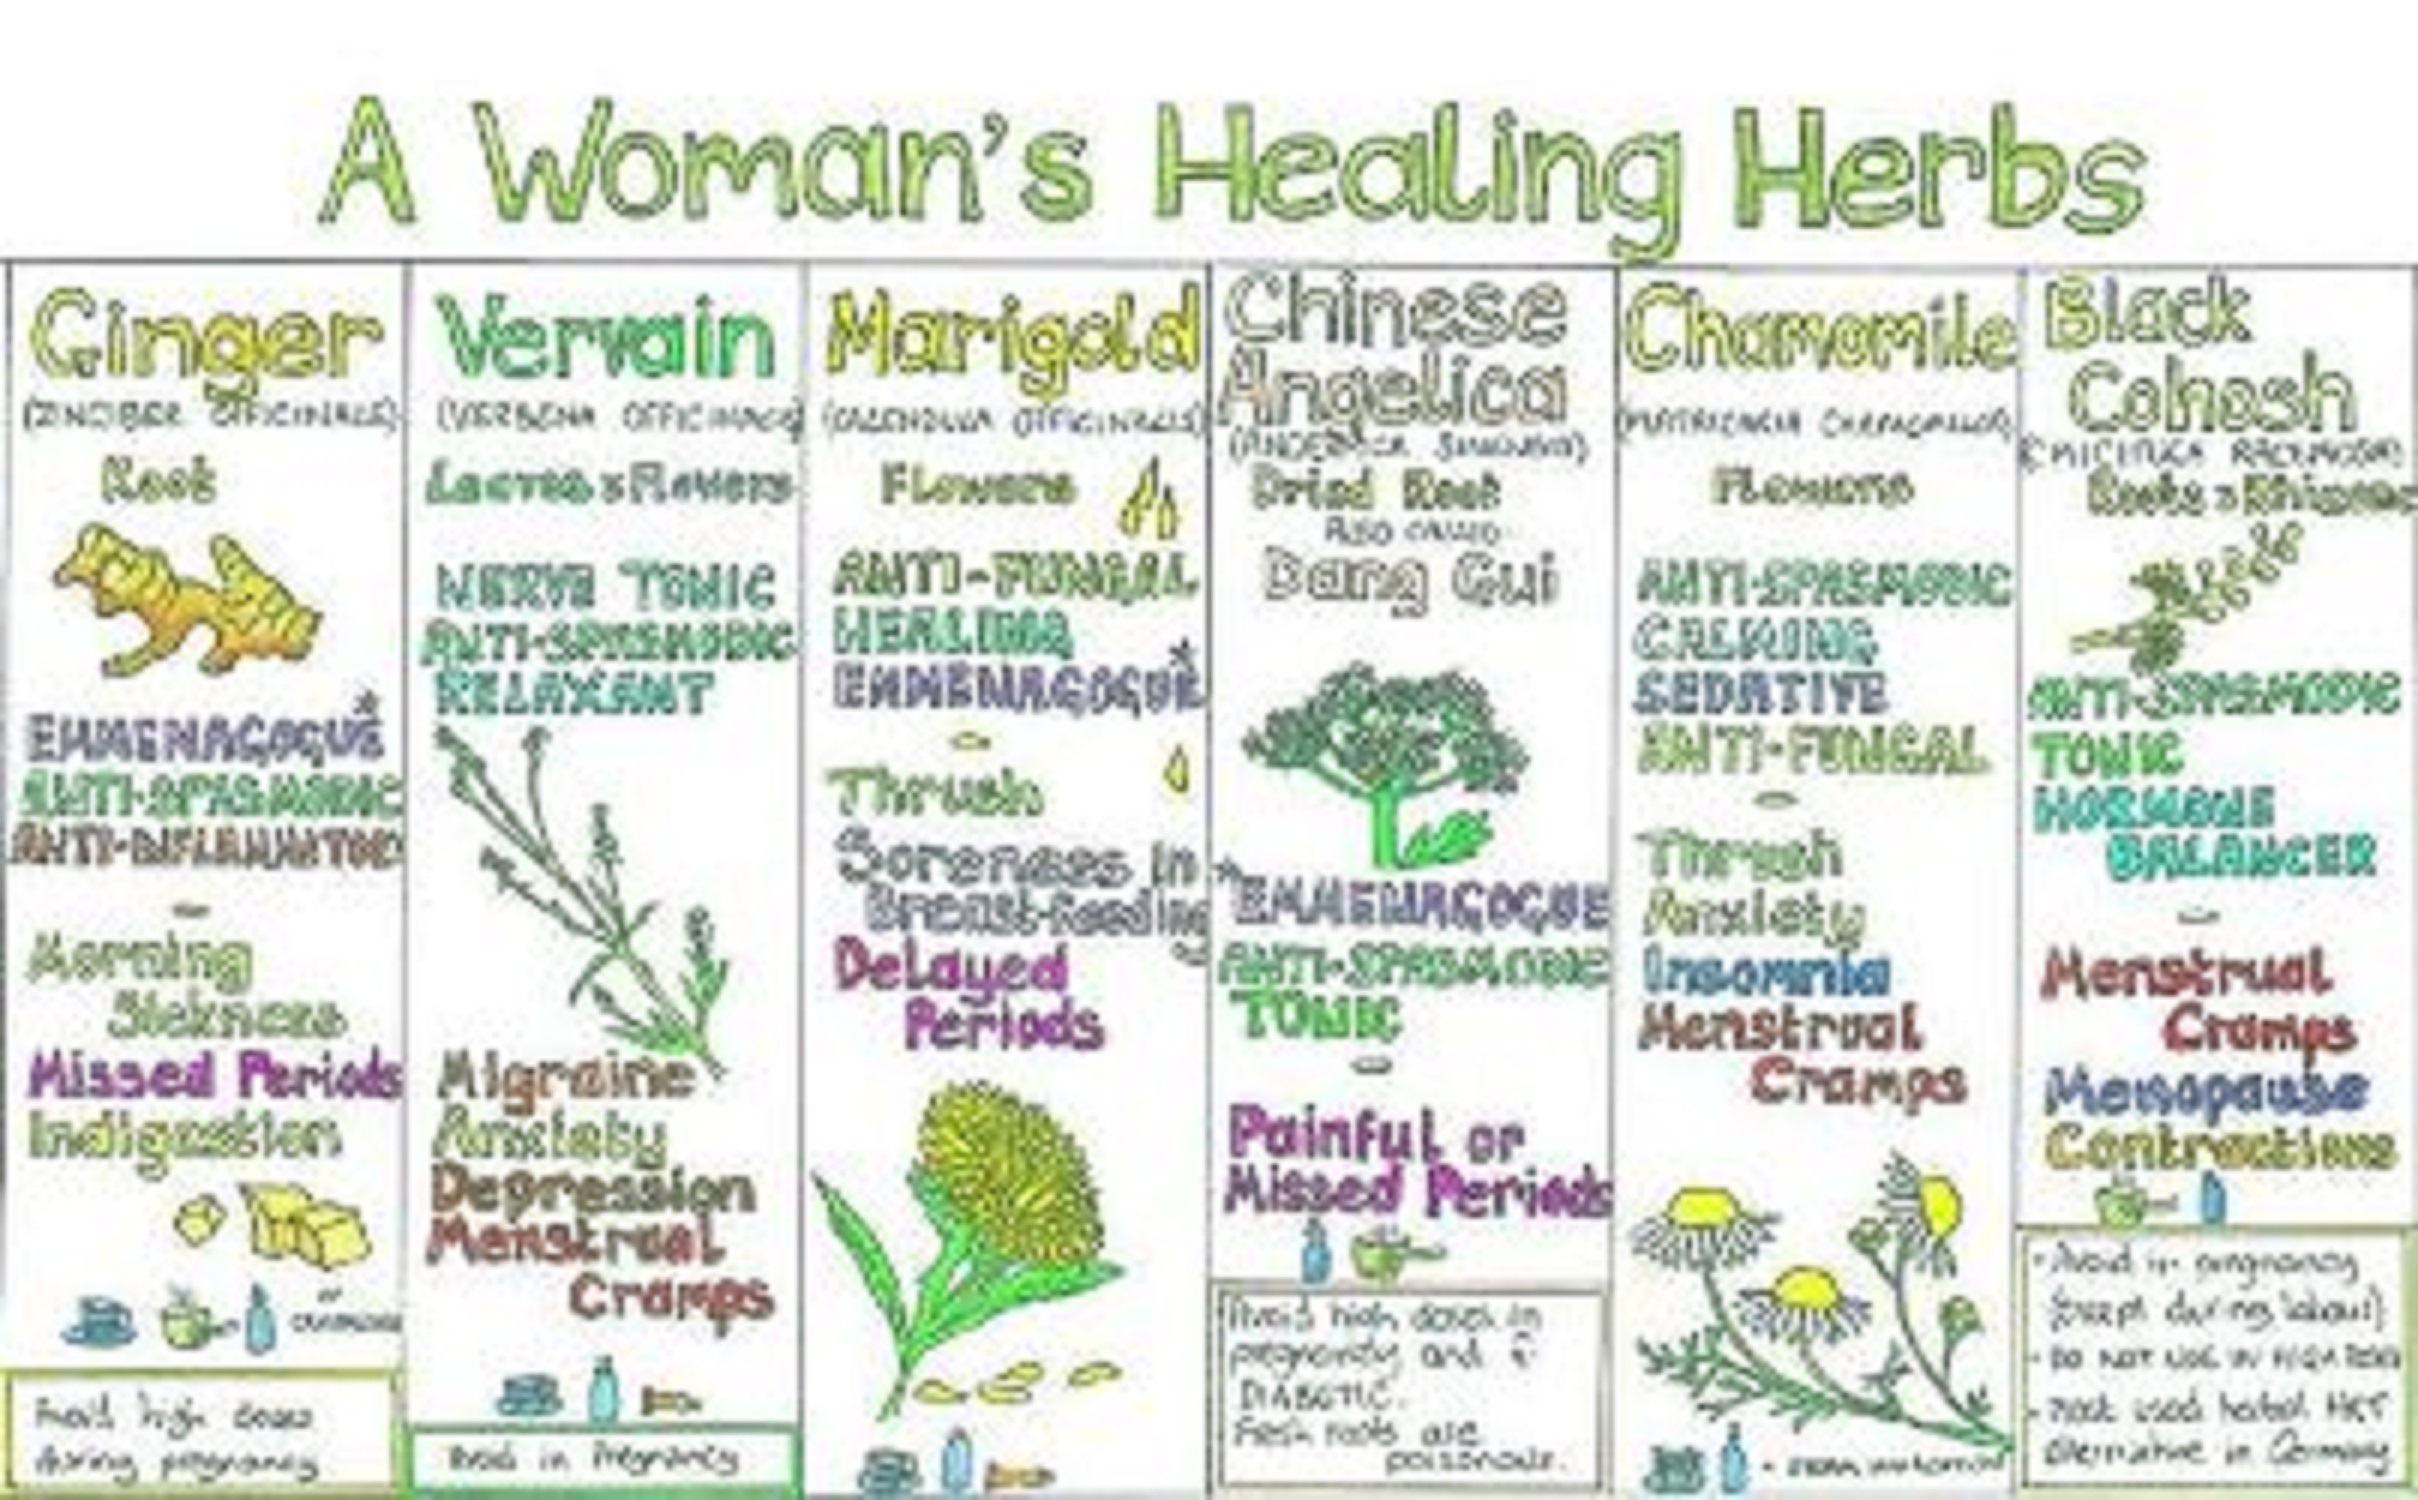 HEALING HERBS FOR WOMEN